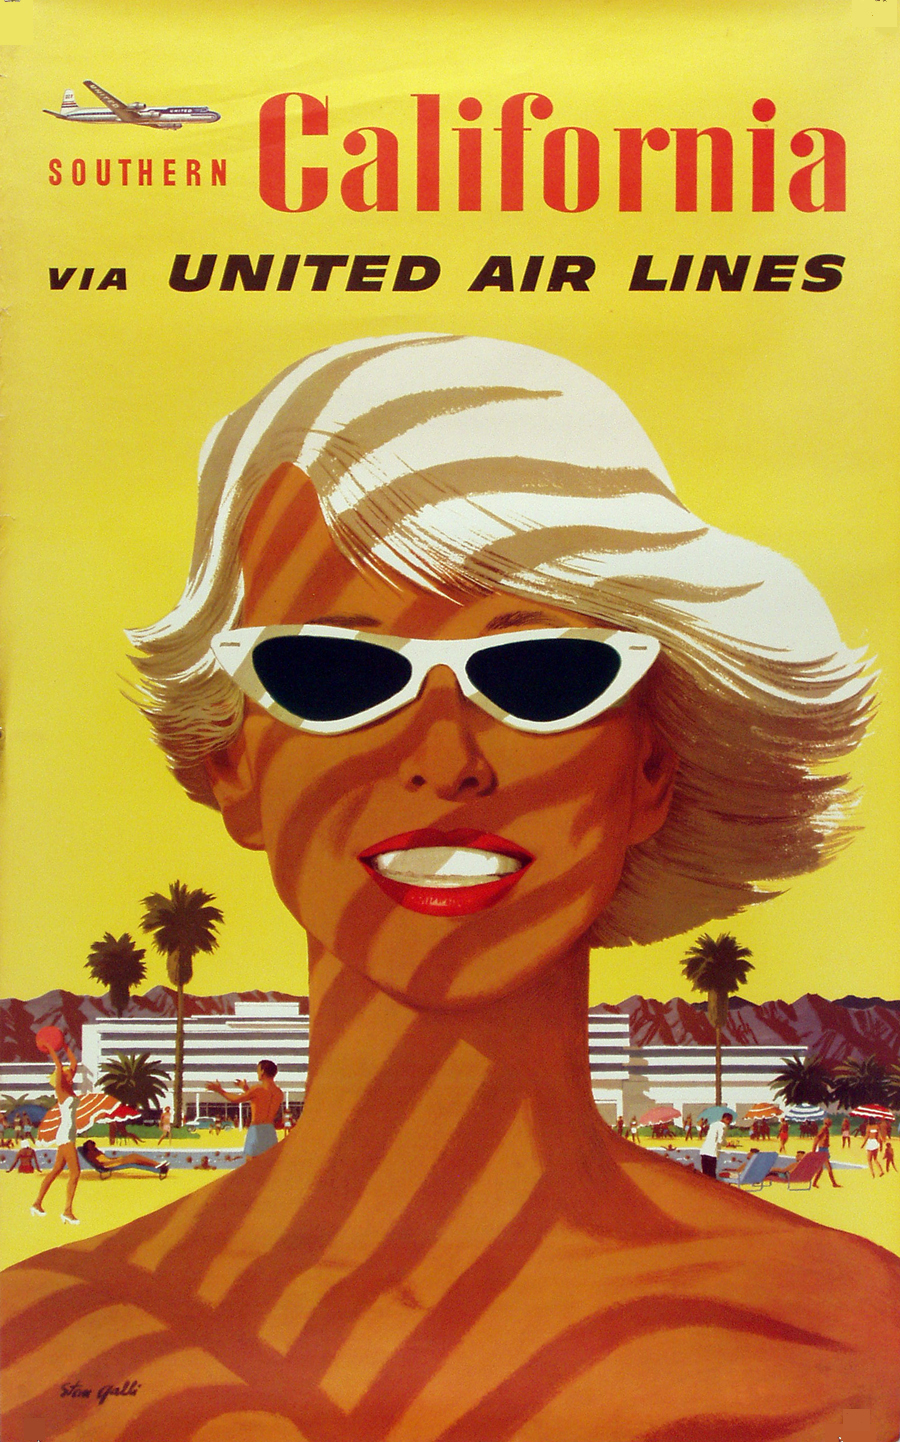 United Airlines Southern California